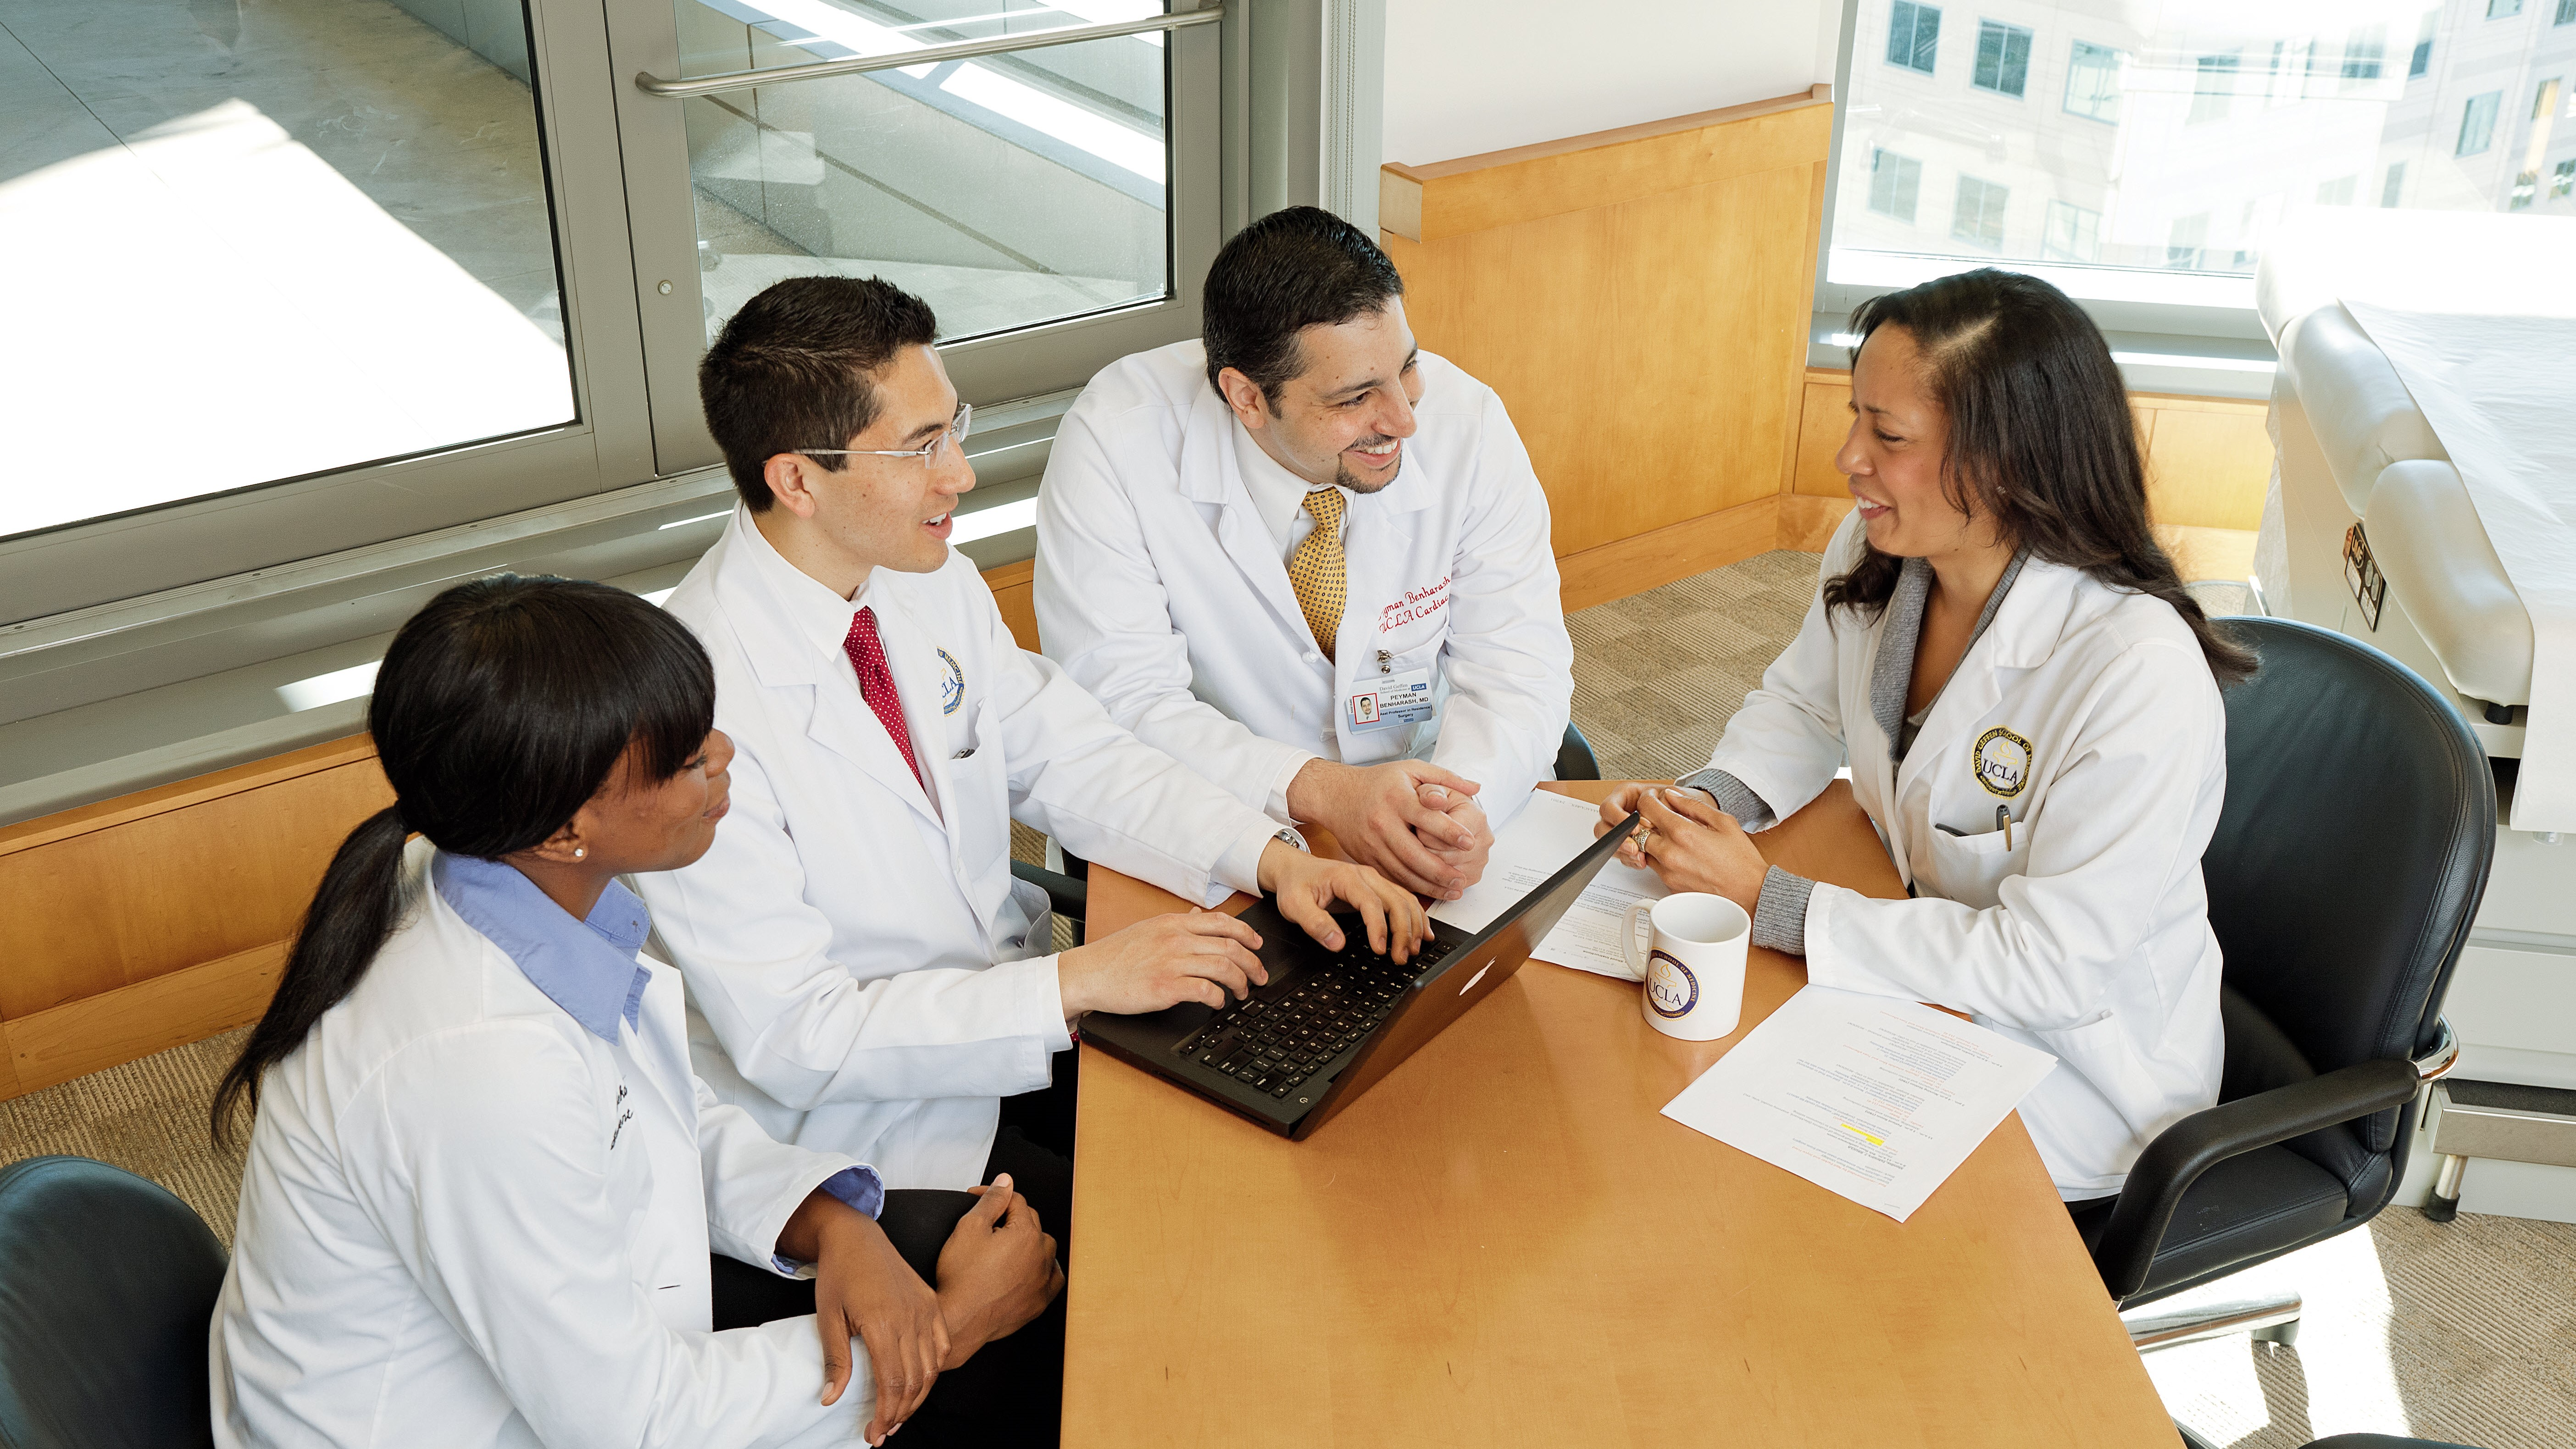 Four clinicians sitting around laptop